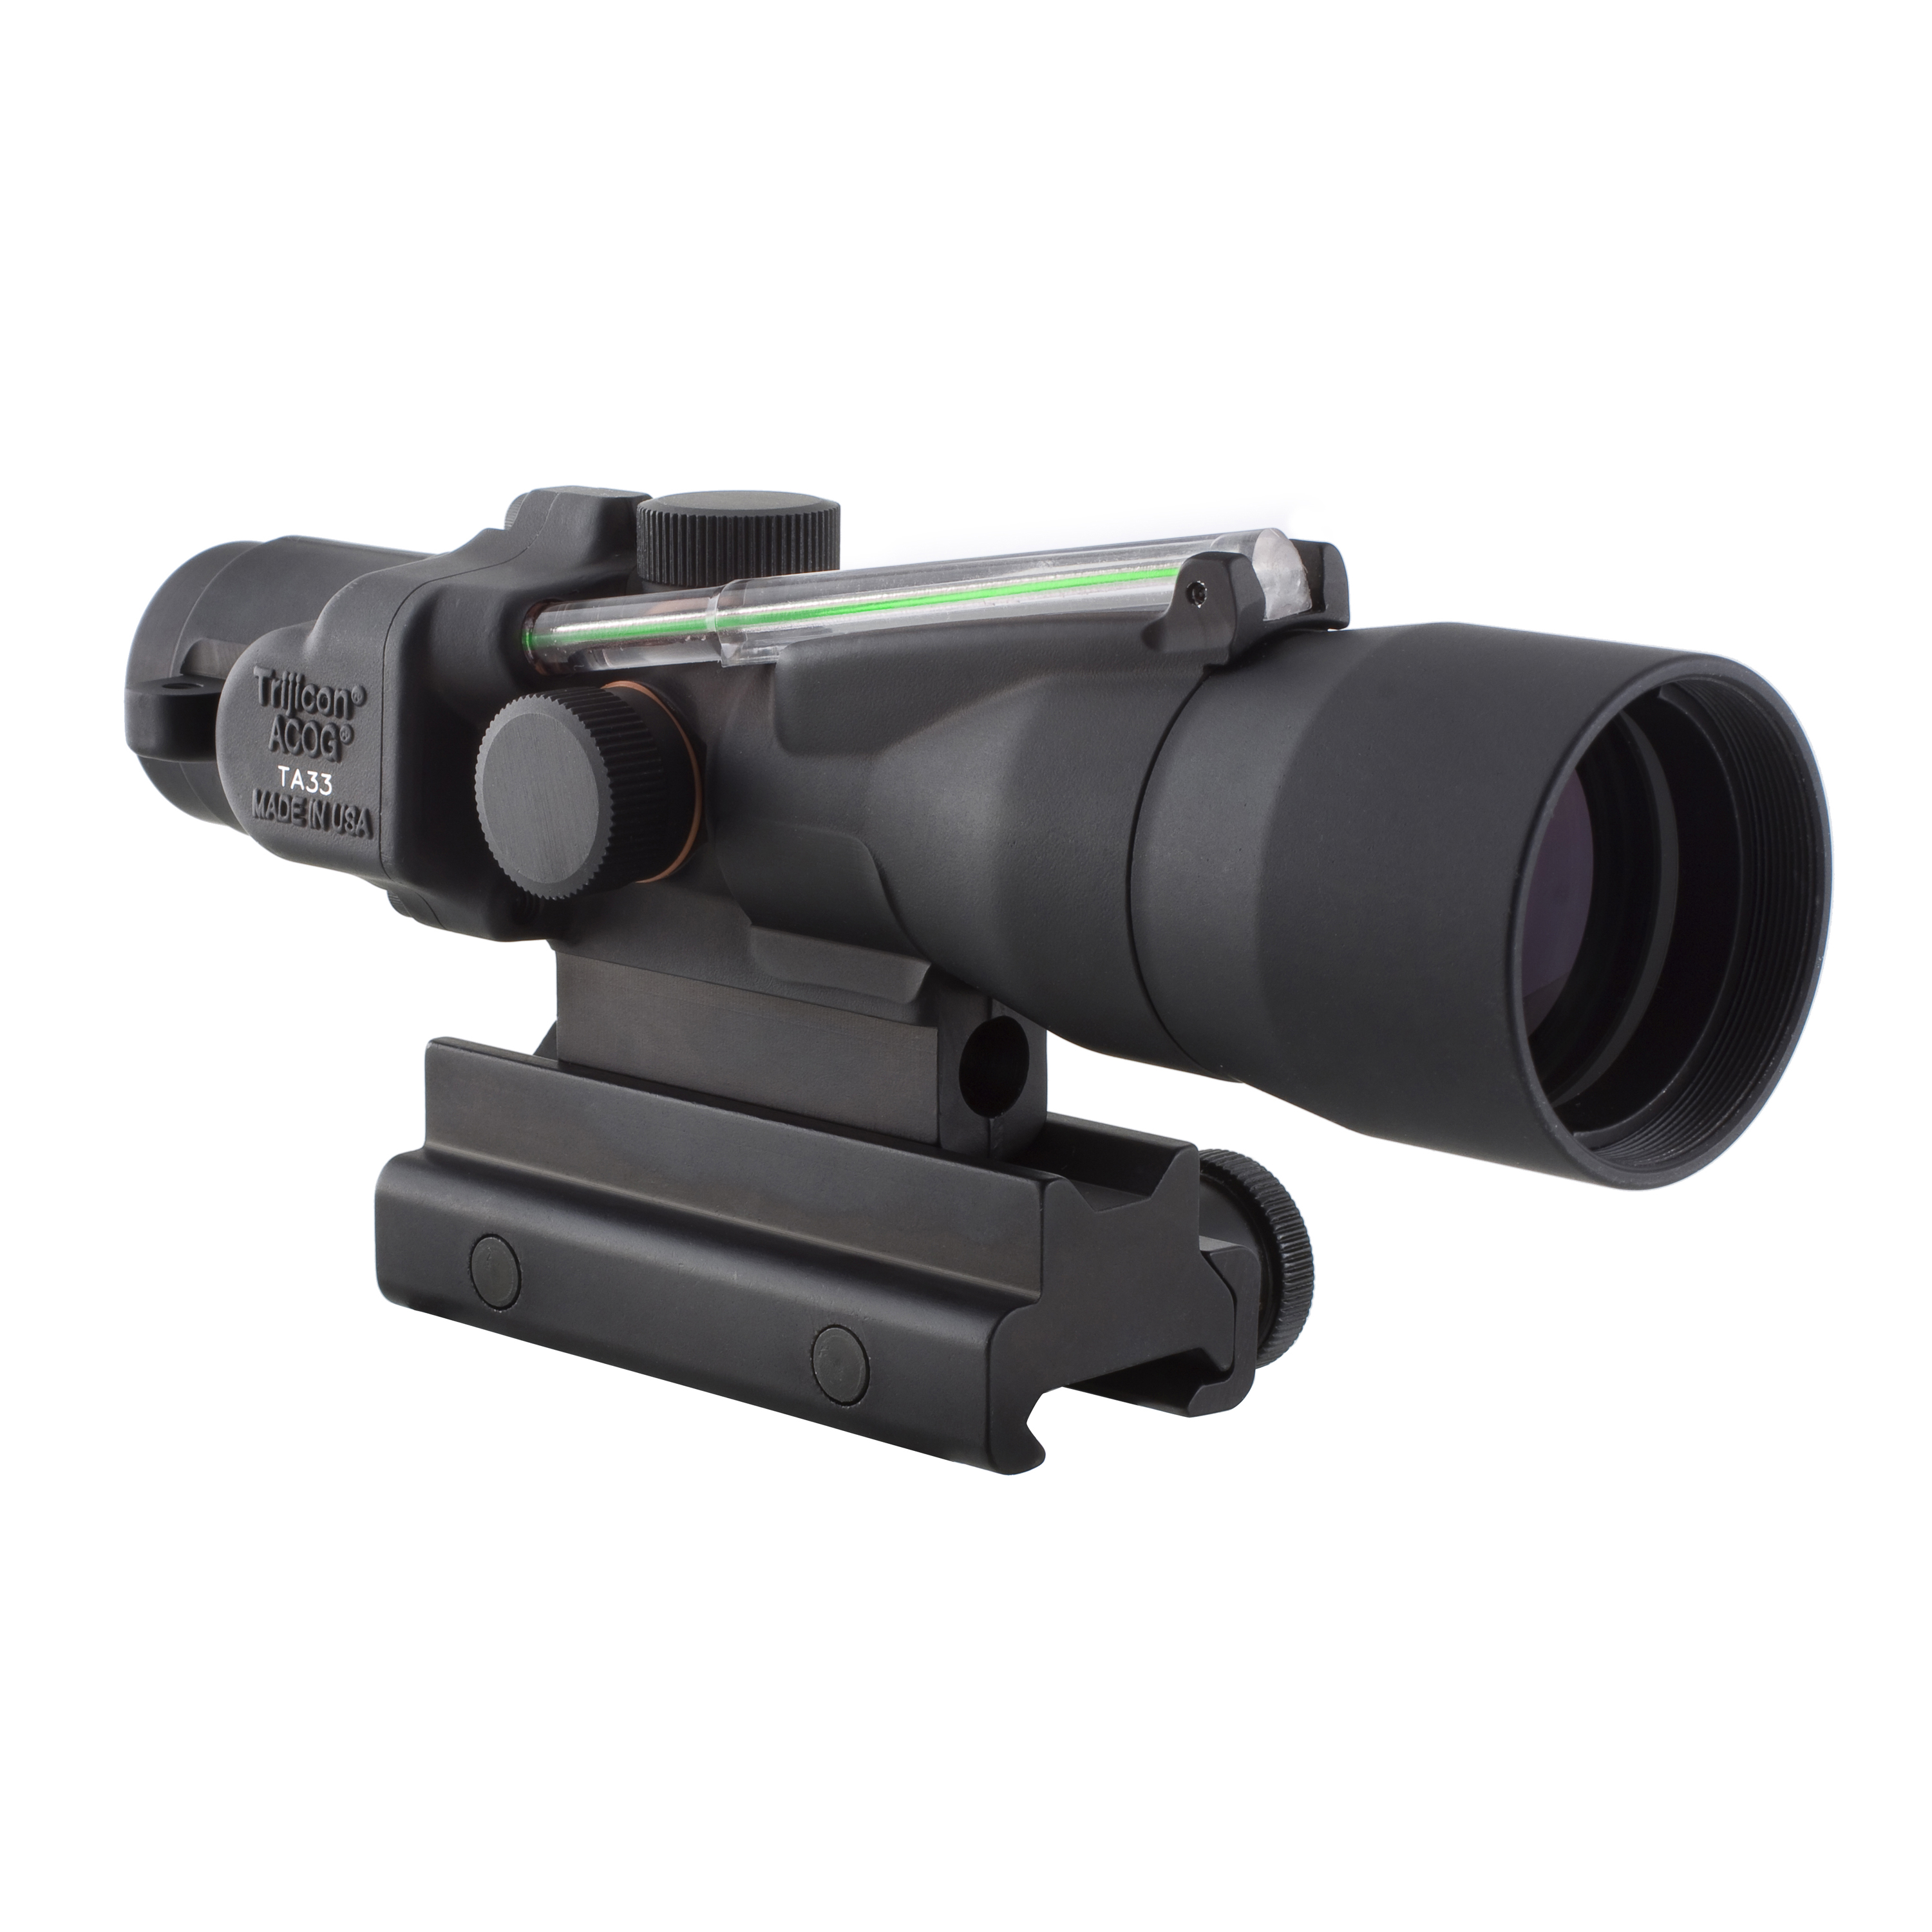 Trijicon ACOG 3x30mm Compact Dual Illuminated Scope Green Crosshair .300 Blackout 115 220gr Ball Reticle, Colt Knob... by Trijicon